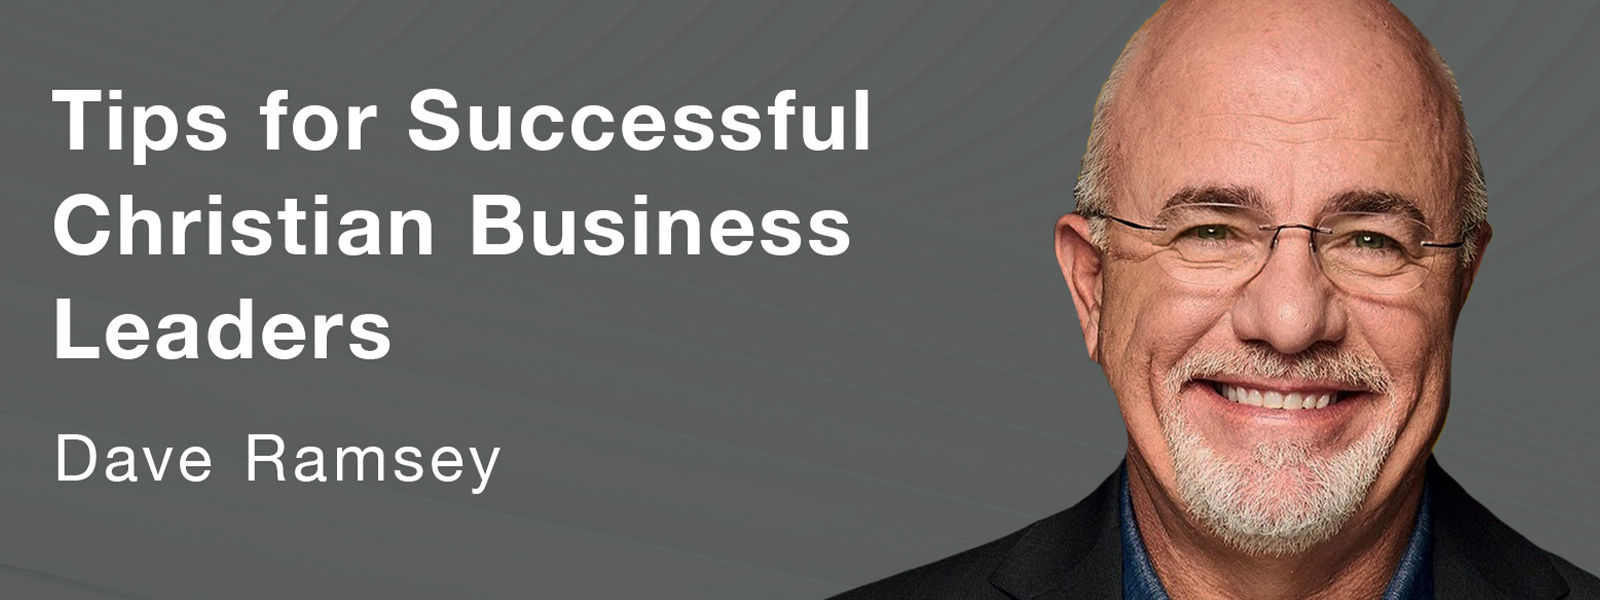 Dave Ramsey's Tips for Successful Christian Business Leaders